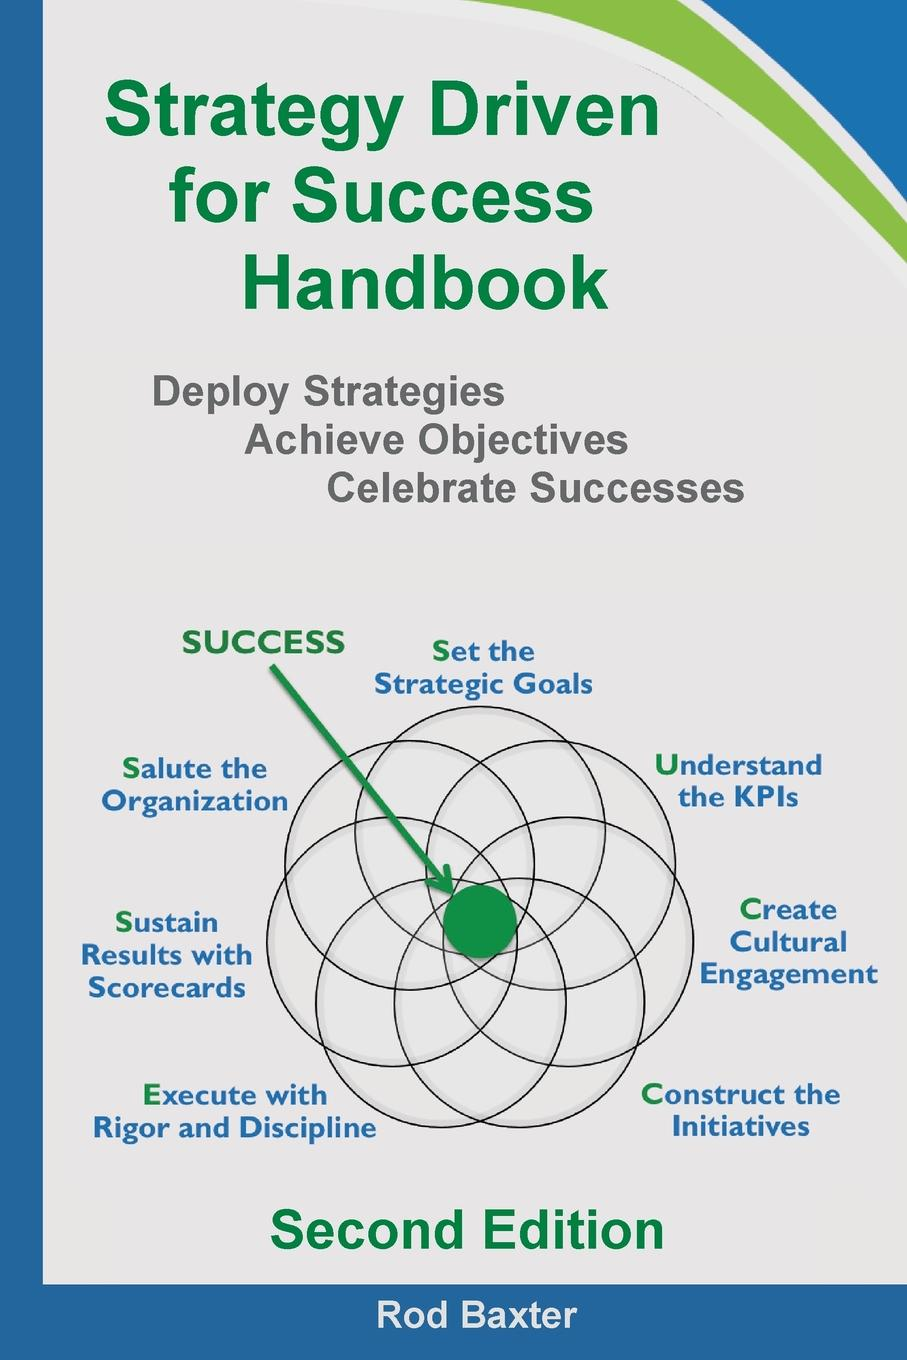 Strategy Driven for Success Handbook. Deploy Strategies - Achieve Objectives - Celebrate Successes The second edition is an improved guide to strategy driven...